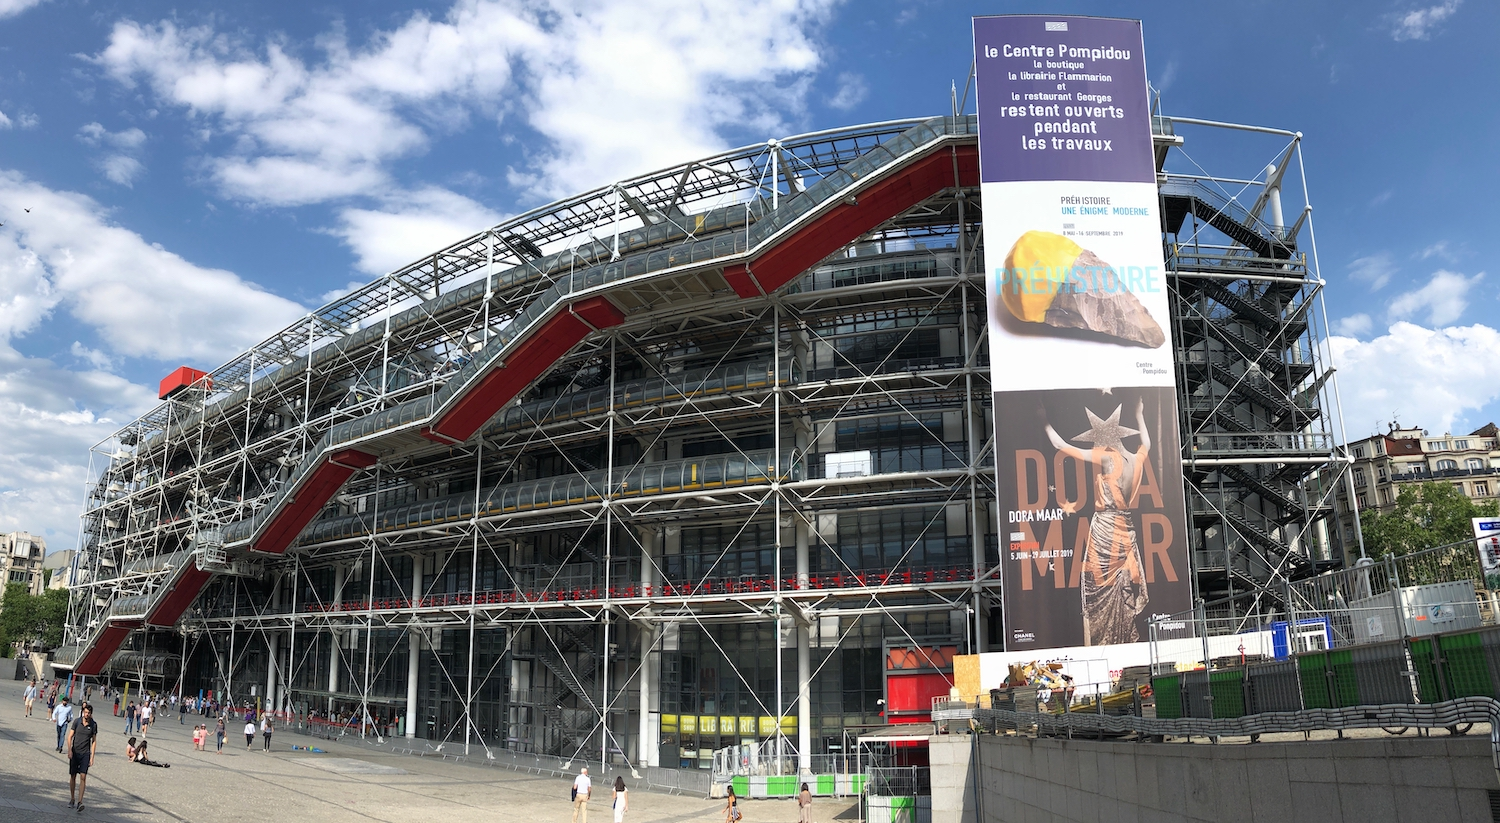 Exterior of the Pompidou Center, France as it readies for renovation.